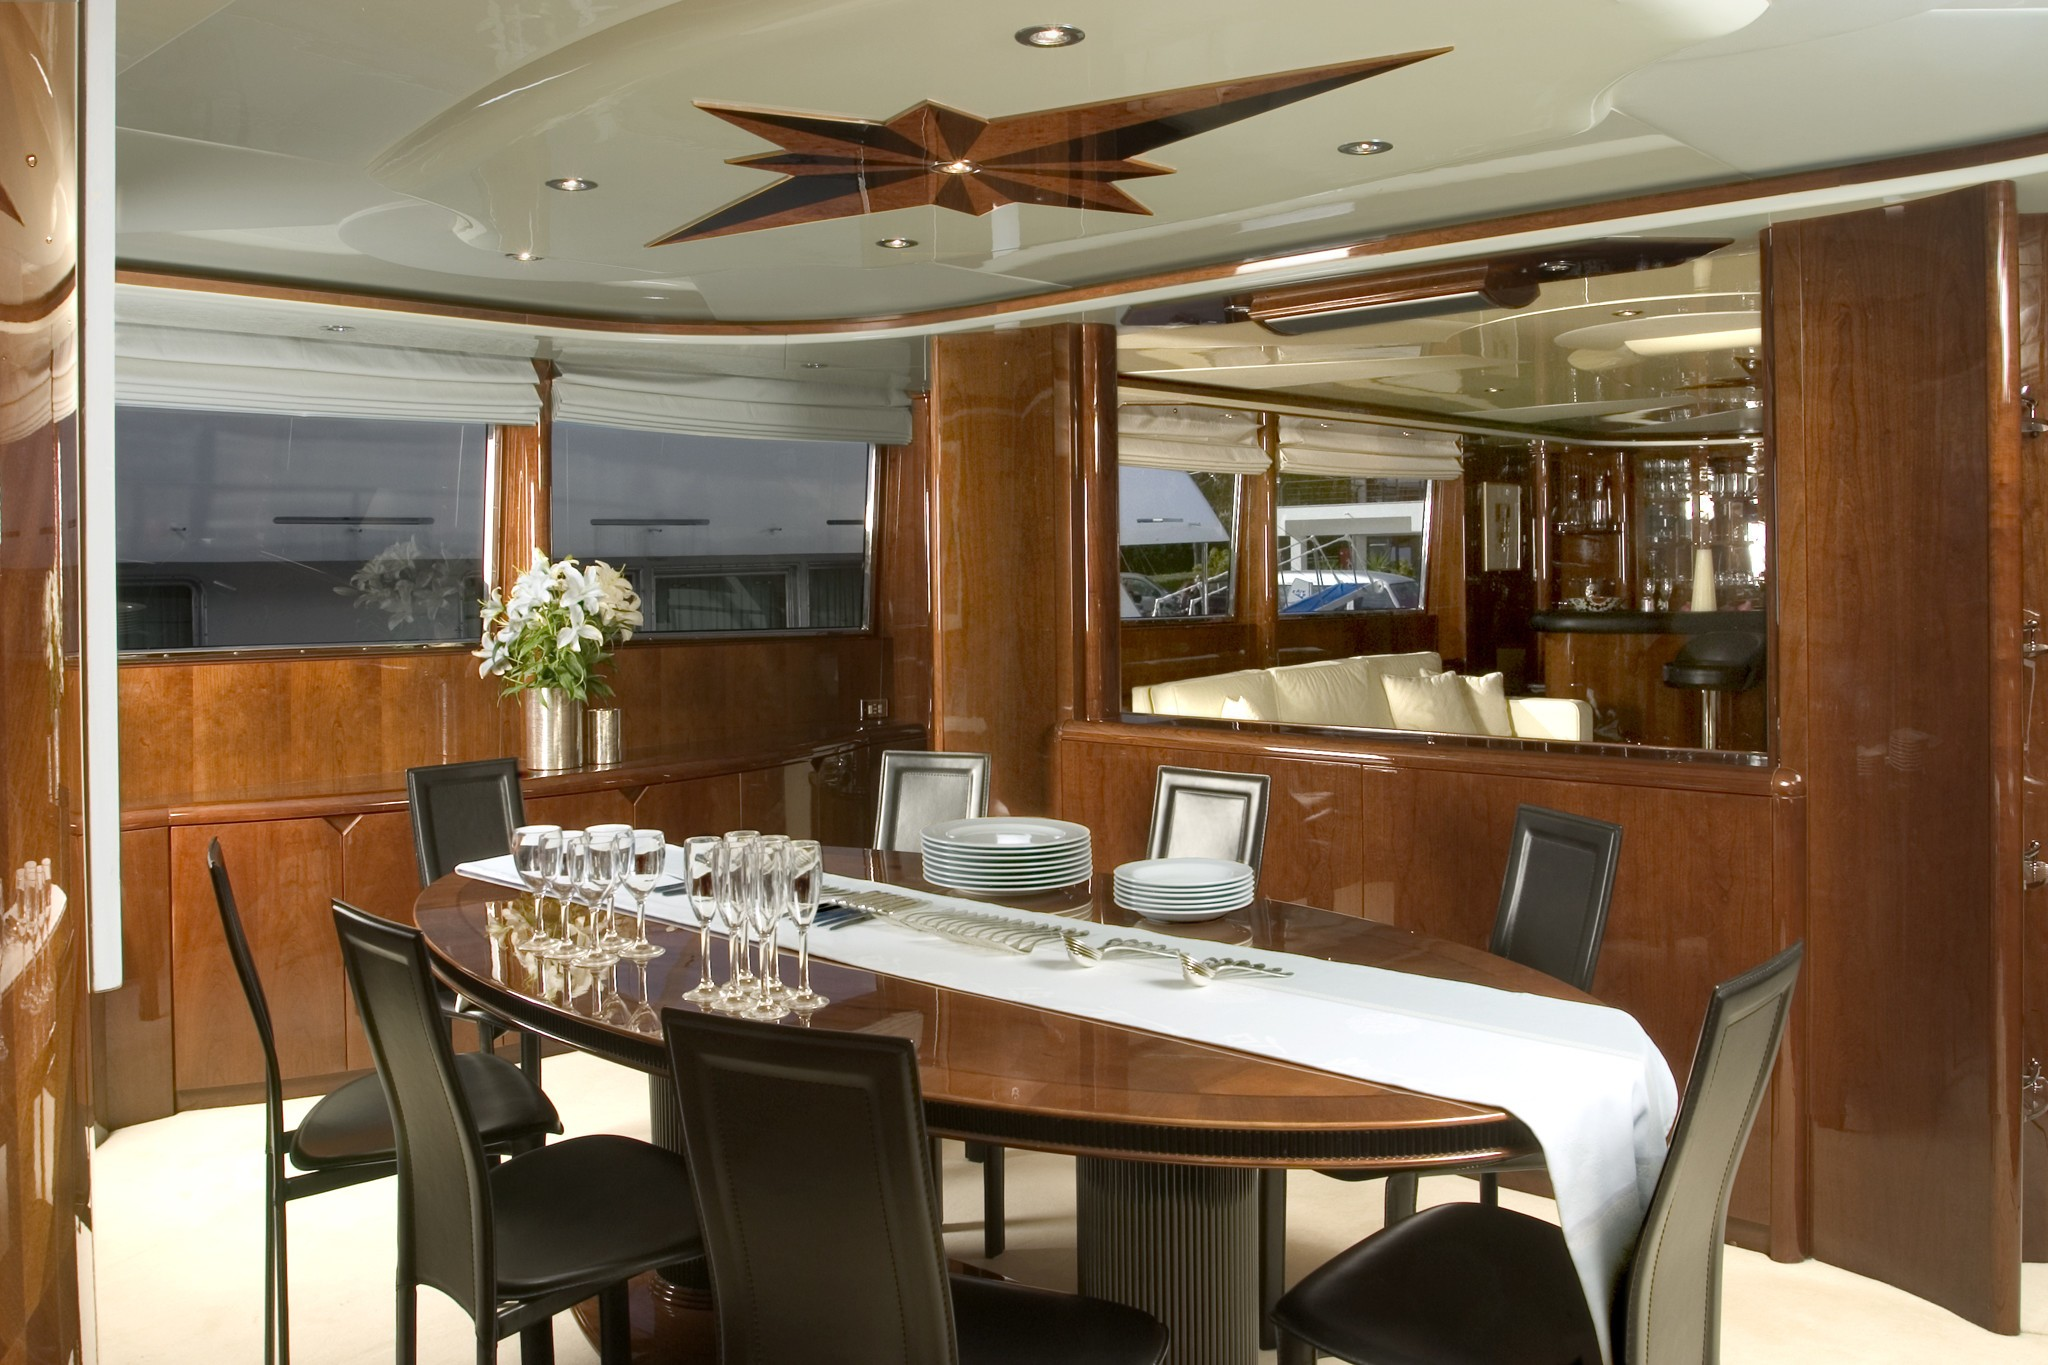 Eating/dining Saloon Aboard Yacht LET IT BE